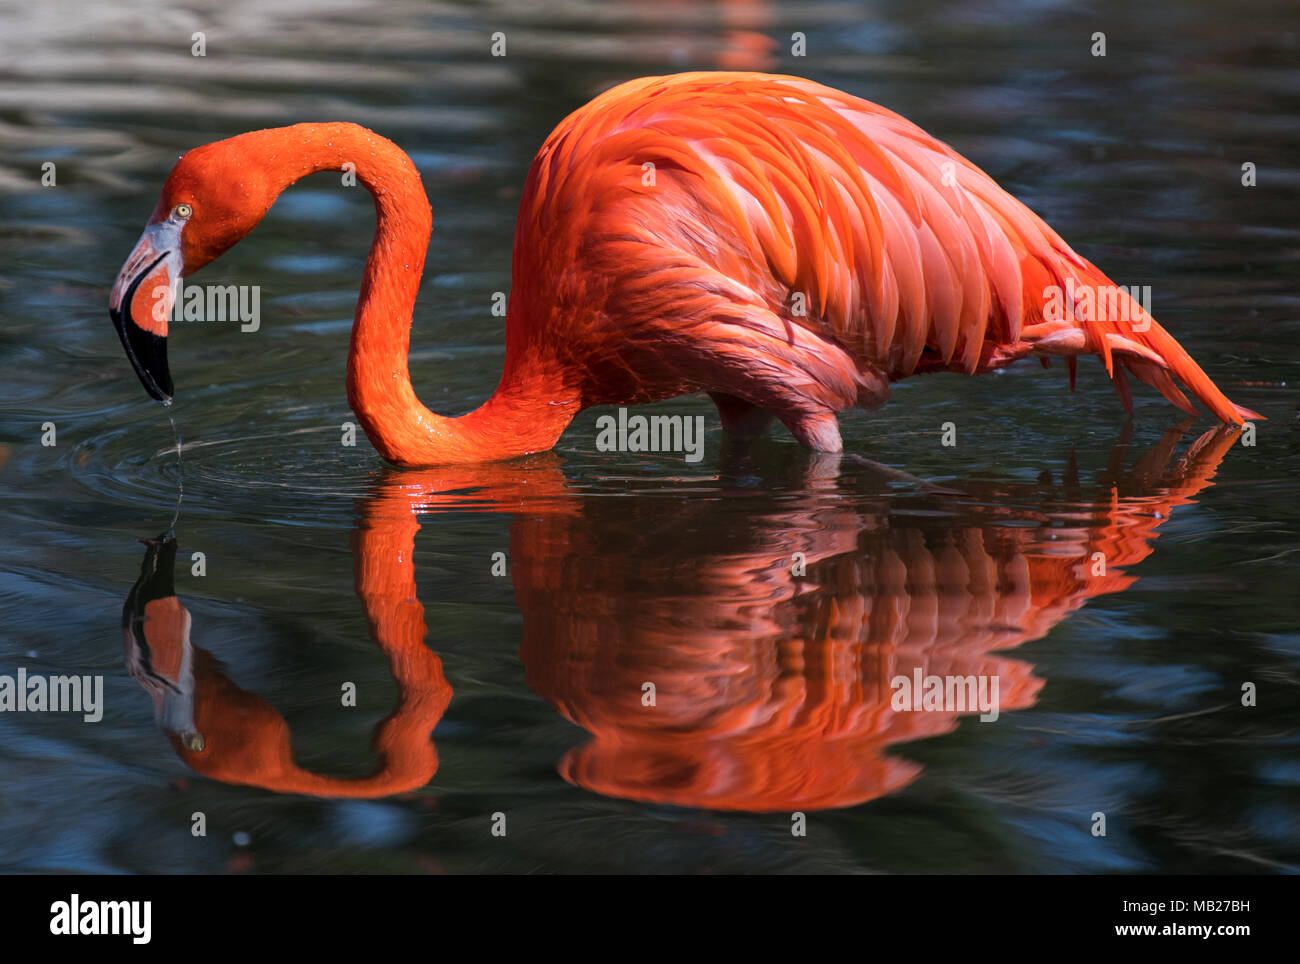 Dresden, Germany. 06 April 2018, Germany, Dresden: A red flamingo stands inside its pond in its enclosure at the Dresden Zoo. Photo: Monika Skolimowska/dpa-Zentralbild/dpa Credit: dpa picture alliance/Alamy Live News - Stock Image